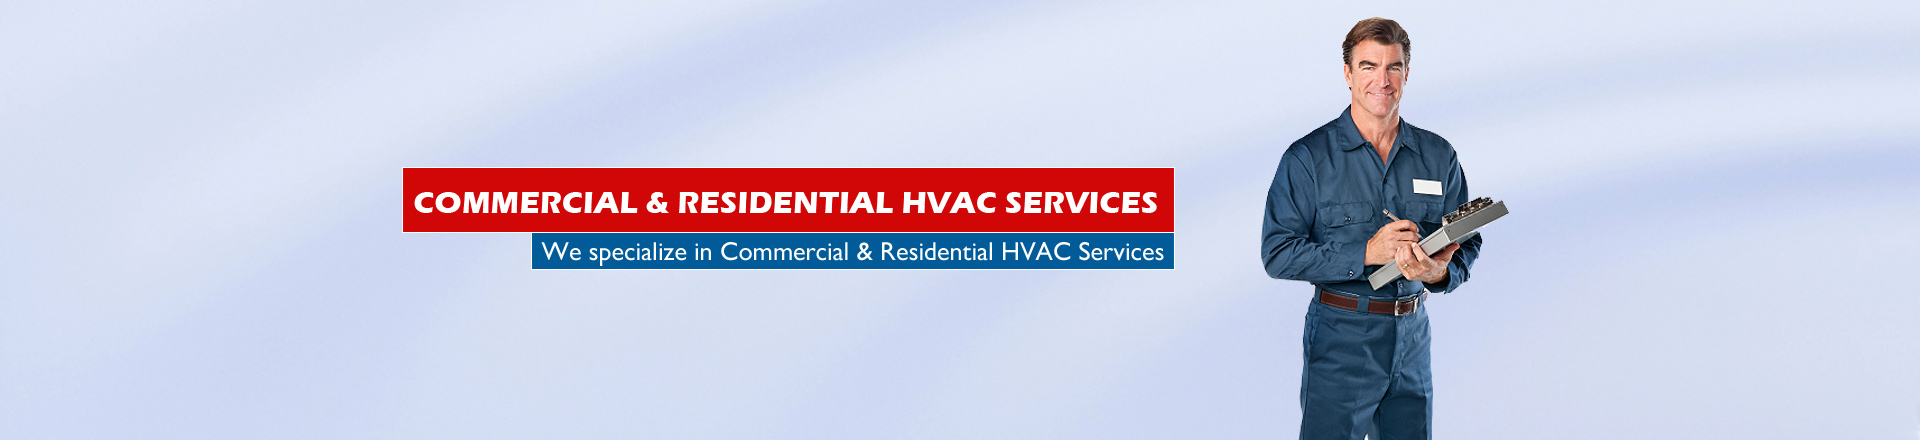 Specializing-in-Commercial-Residential-HVAC2